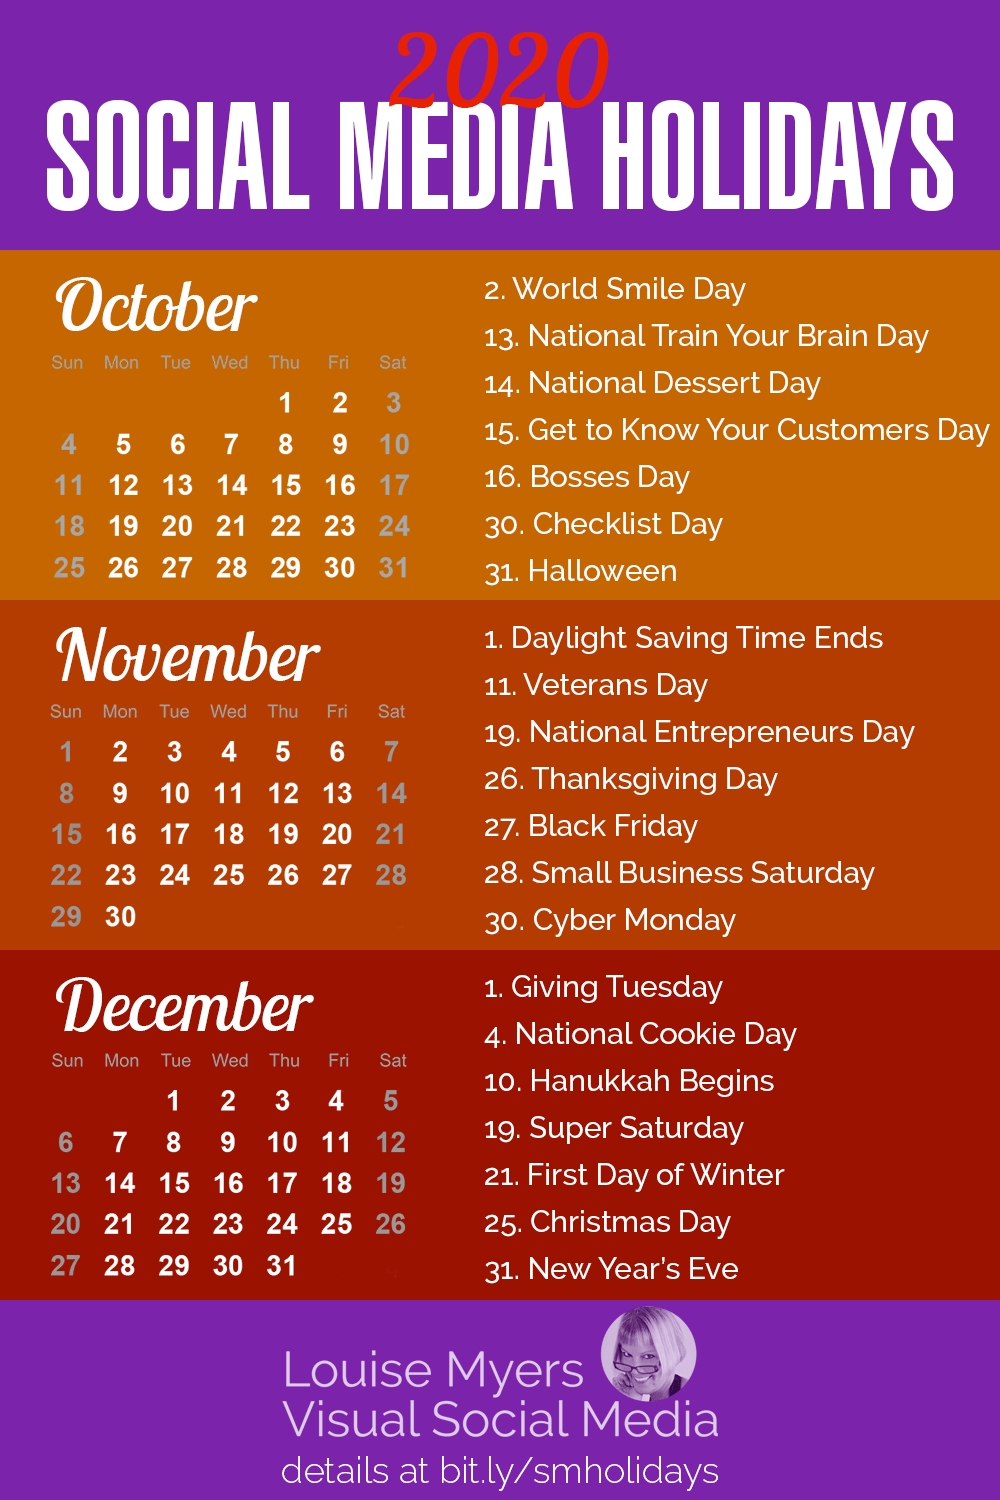 84 Social Media Holidays You Need In 2020: Indispensable! pertaining to National Day Calendar 2020 Printable List